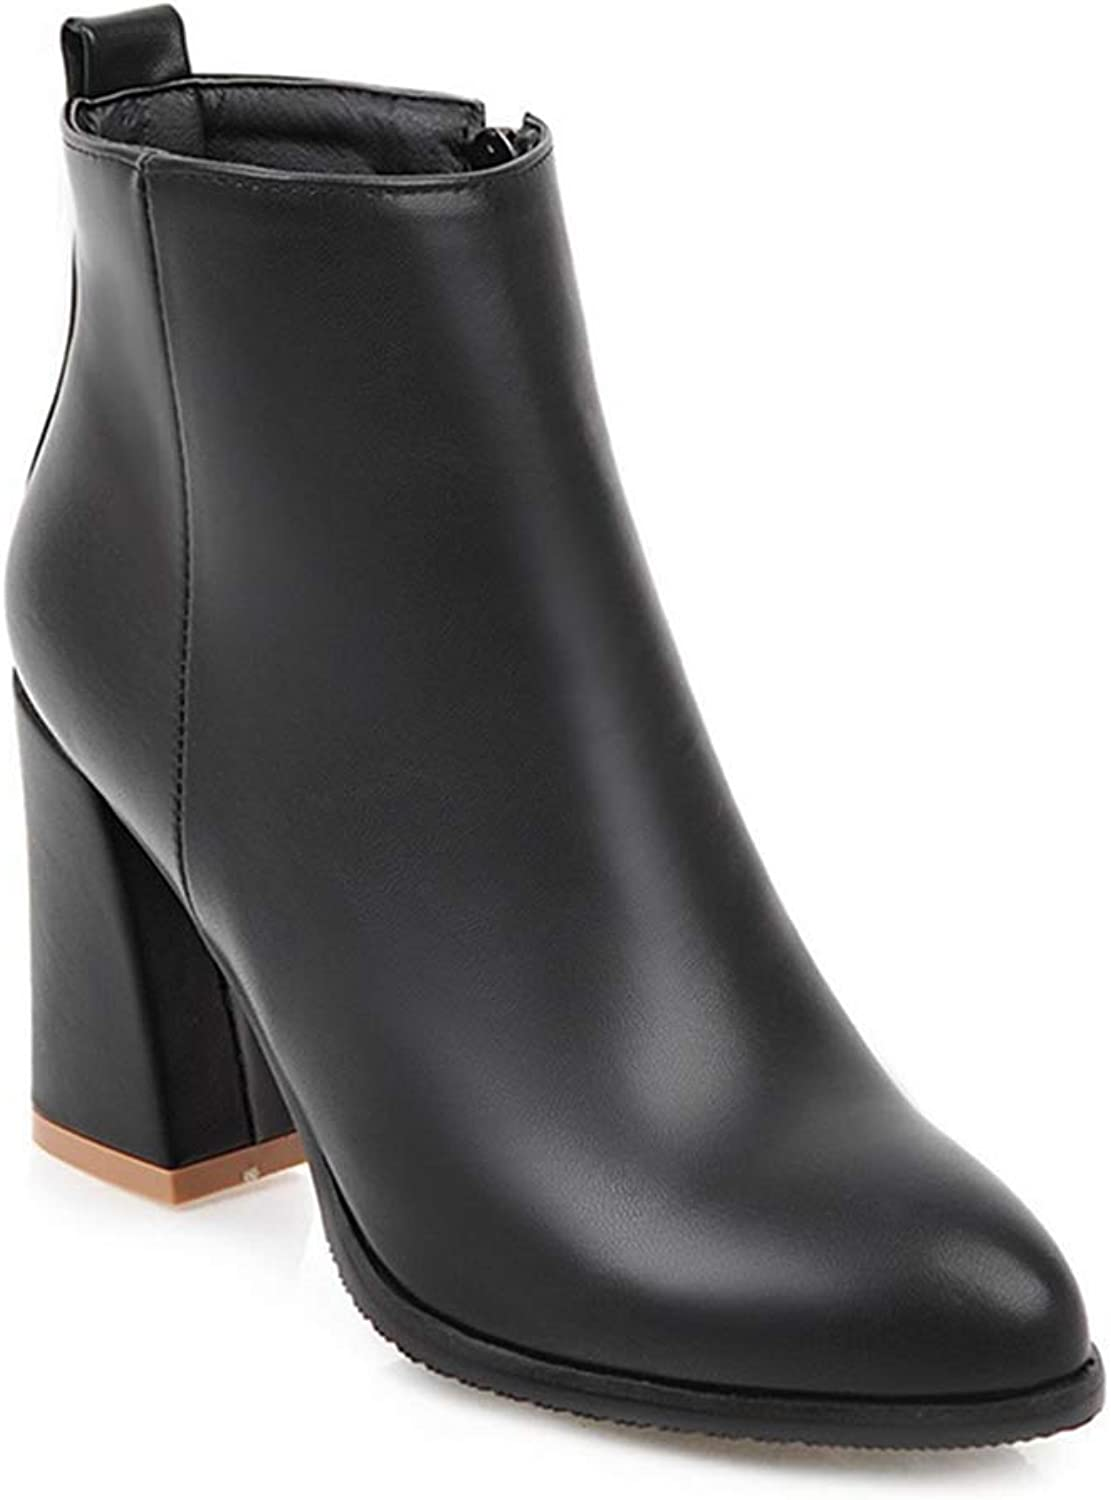 Elsa Wilcox Women Chunky High Heel Zipper Western Booties Chelsea Short Boots Black Dressy Pointed Toe Ankle Boots